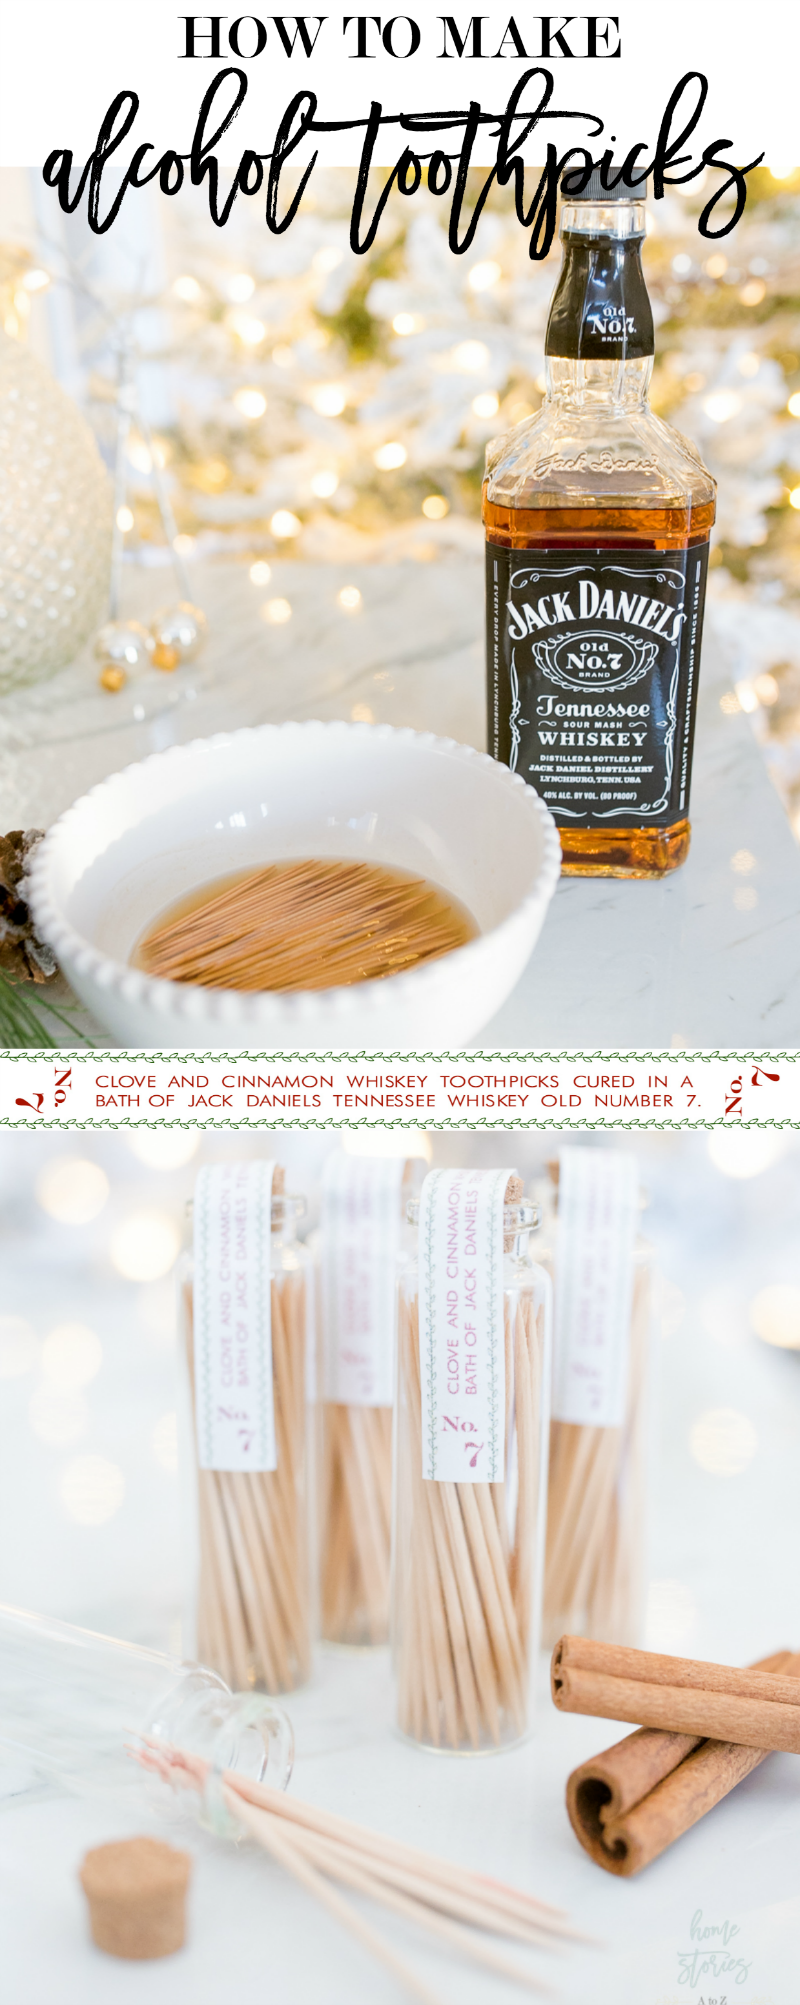 how to make alcohol toothpicks, DIY valentine's gift for men